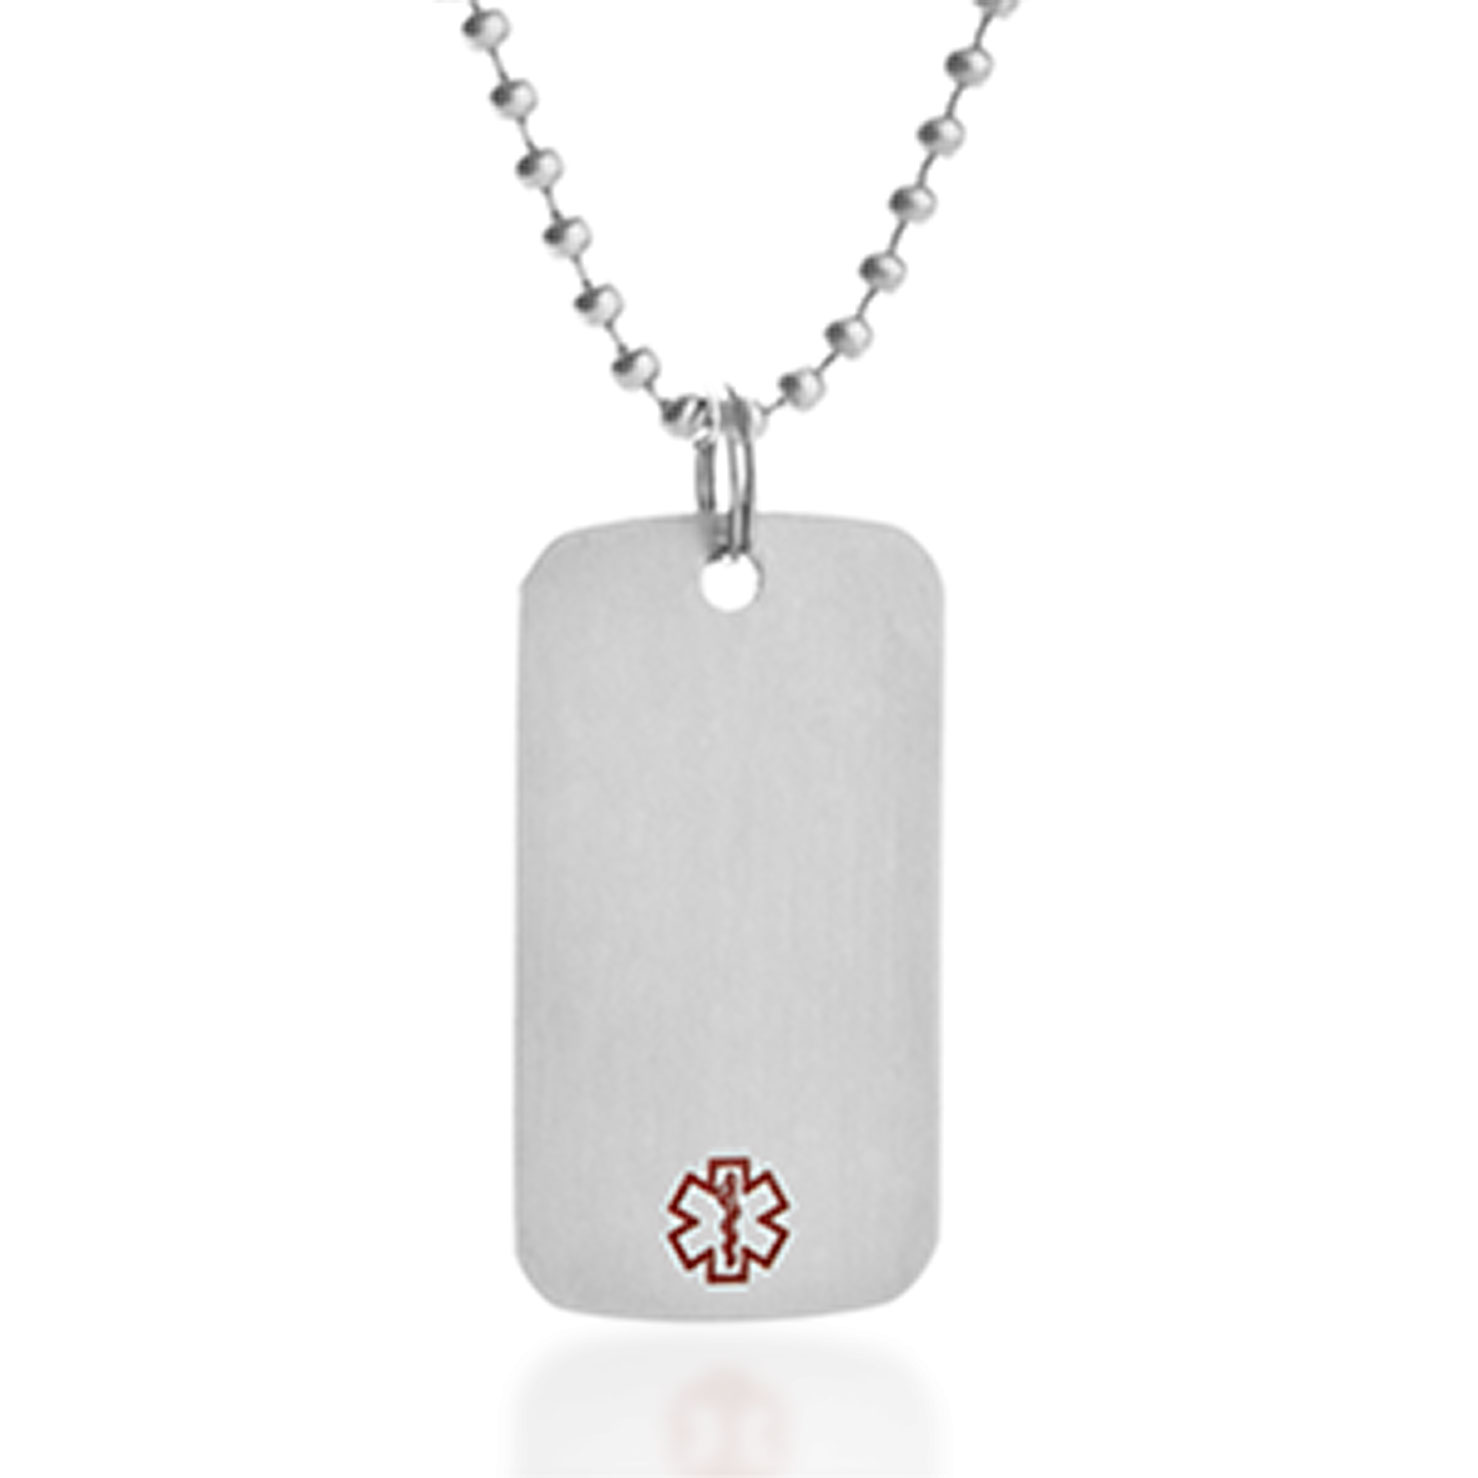 Medical alert necklaces for women medical id necklaces for women cr5165c limited supply medium brushed steel medical dog tag mozeypictures Choice Image